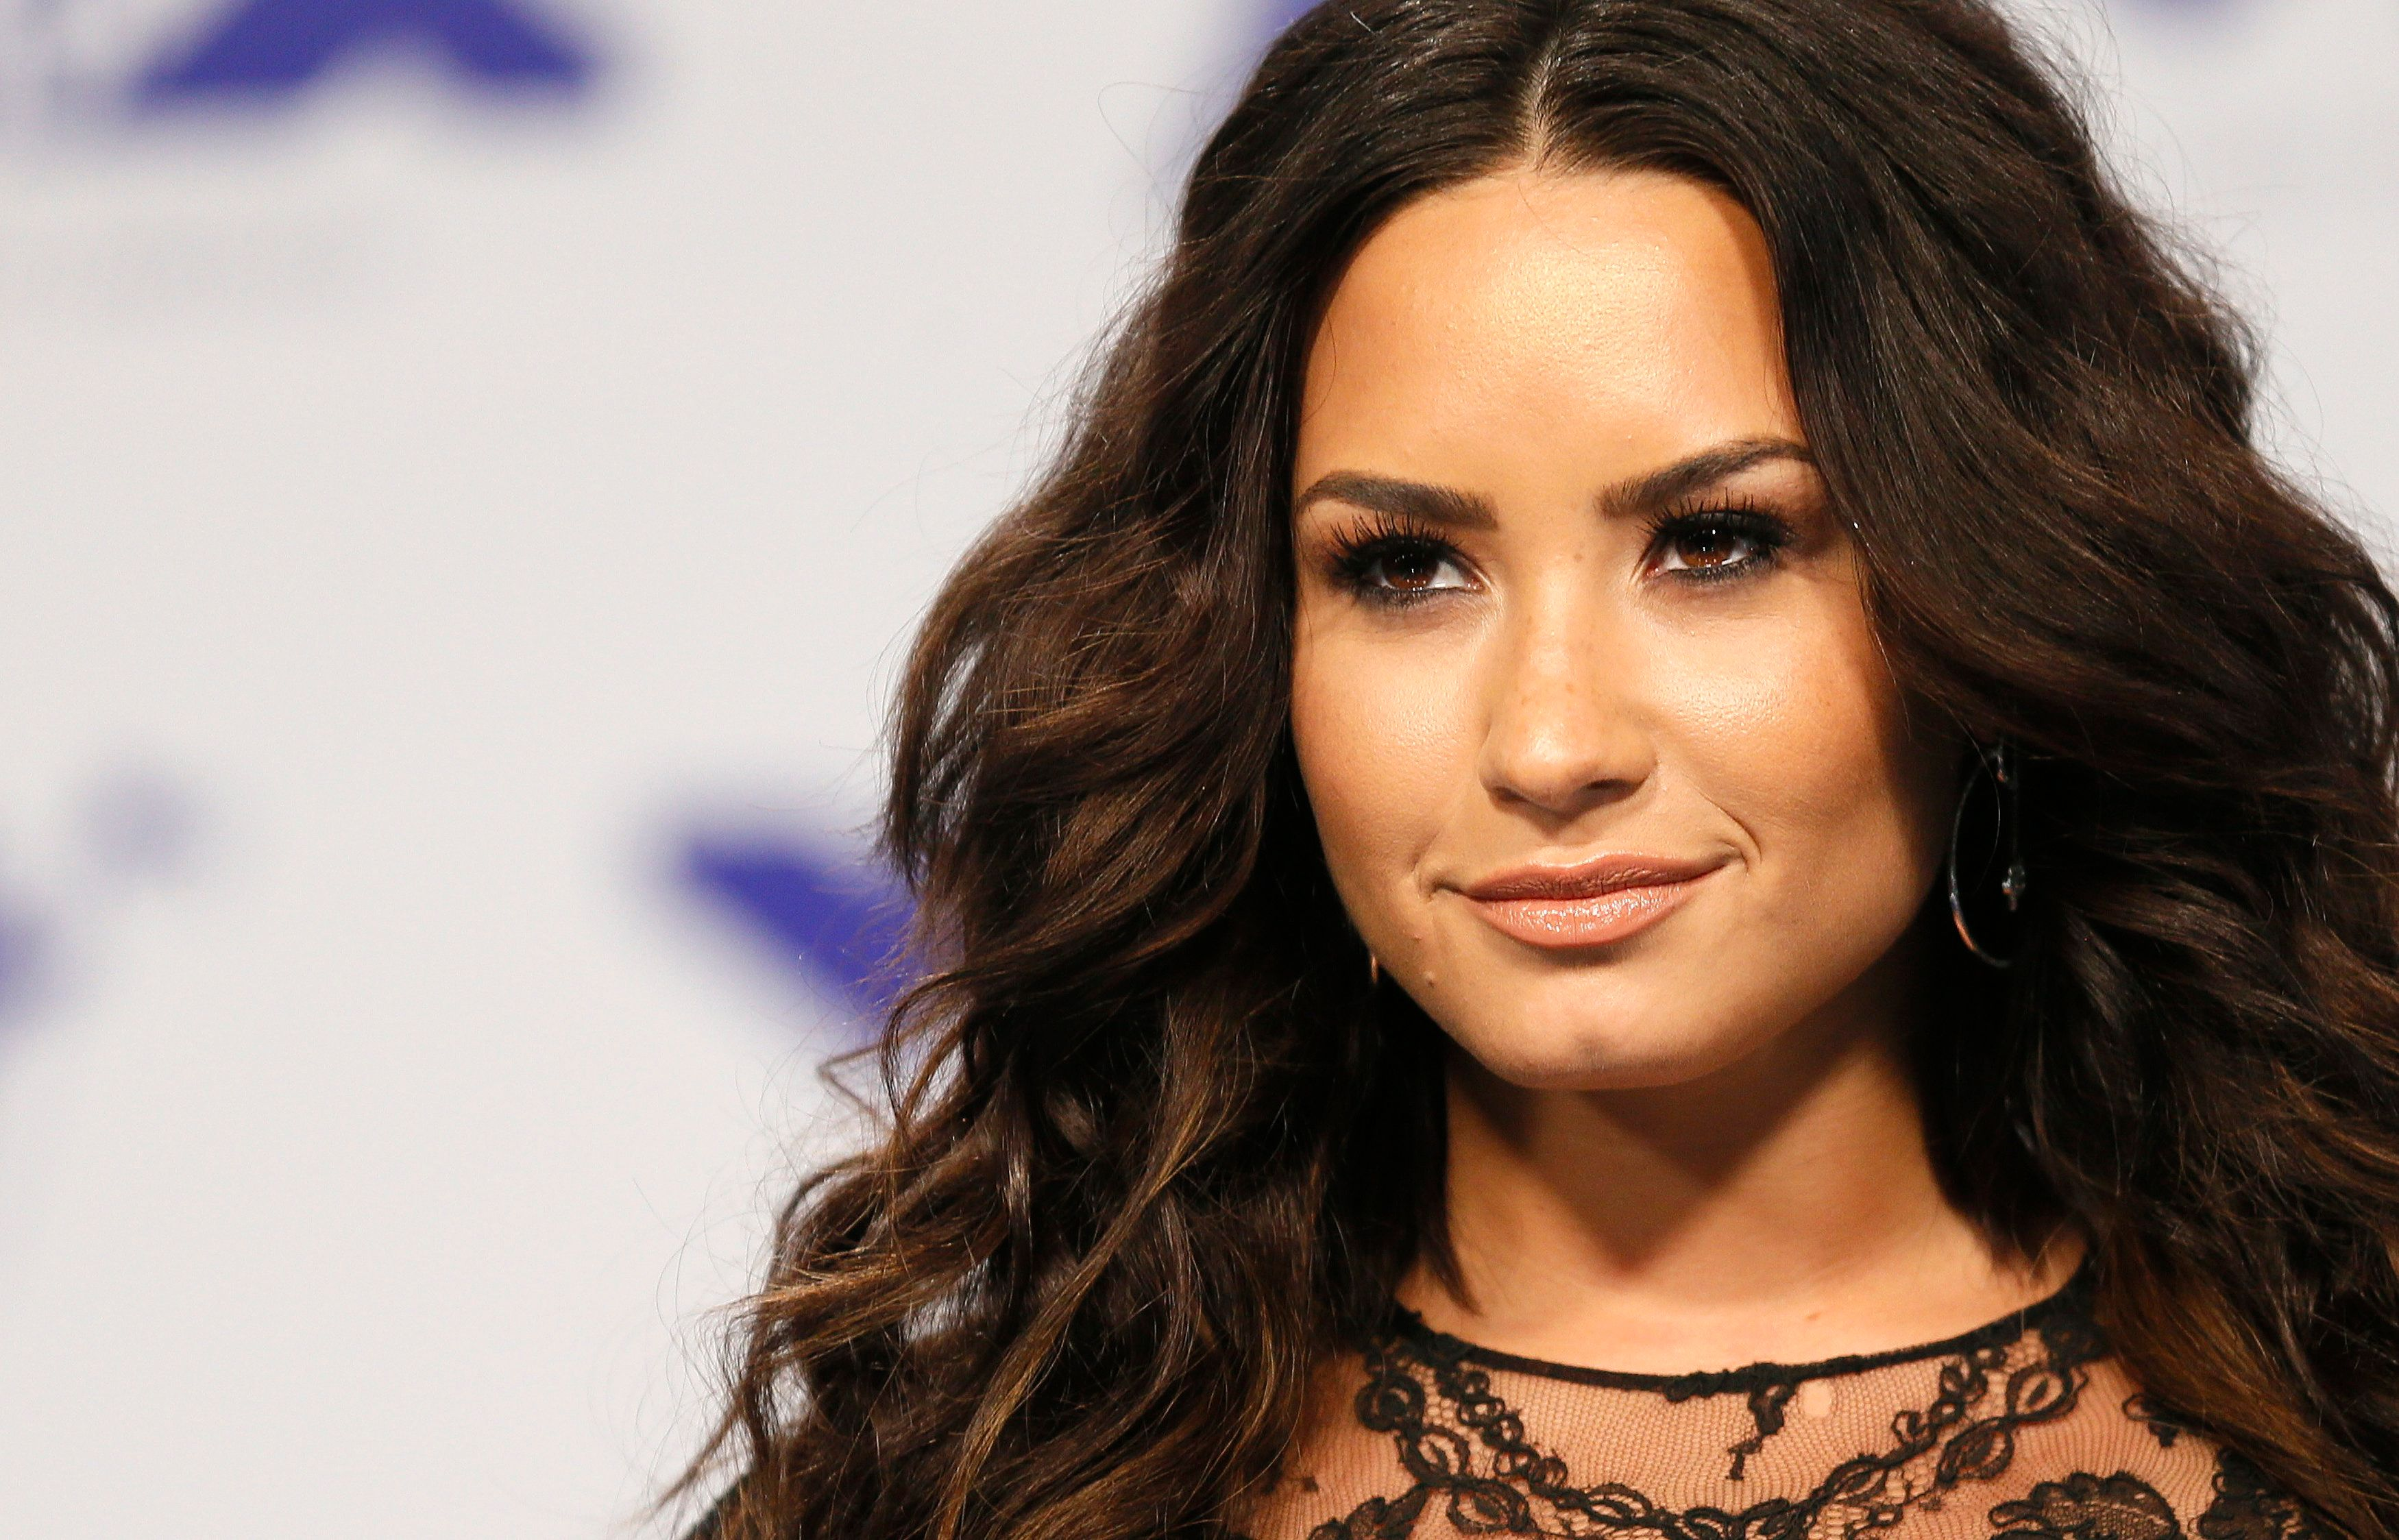 Demi Lovato's Statement Is A Reminder We Need To Be Honest About Relapse